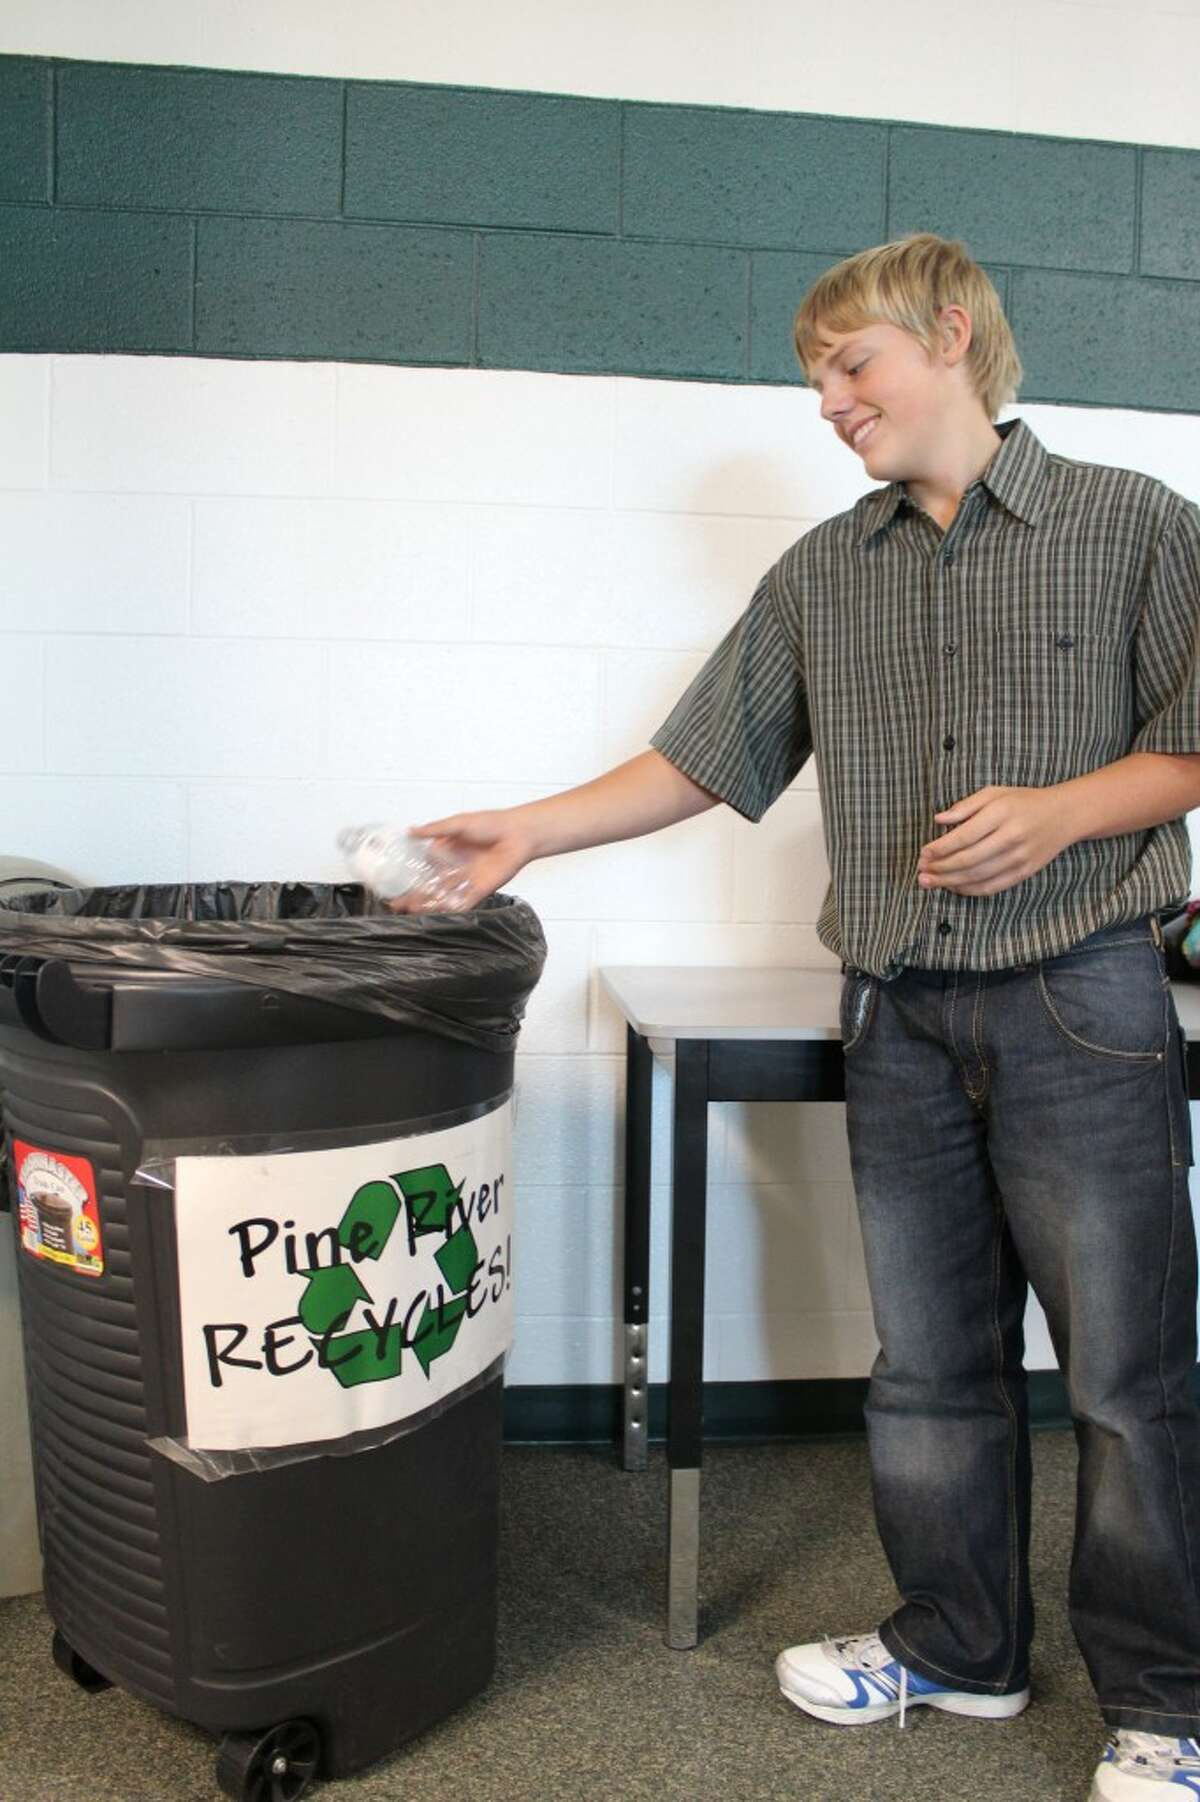 PINE RIVER RECYCLES: Brian Hutchinson, eighth grader at Pine River Middle School recycles a water bottle in one of the school's recycling bins. Pine River High School joined the middle school in the green initiative this year. (Herald Review photo/Sarah Neubecker)